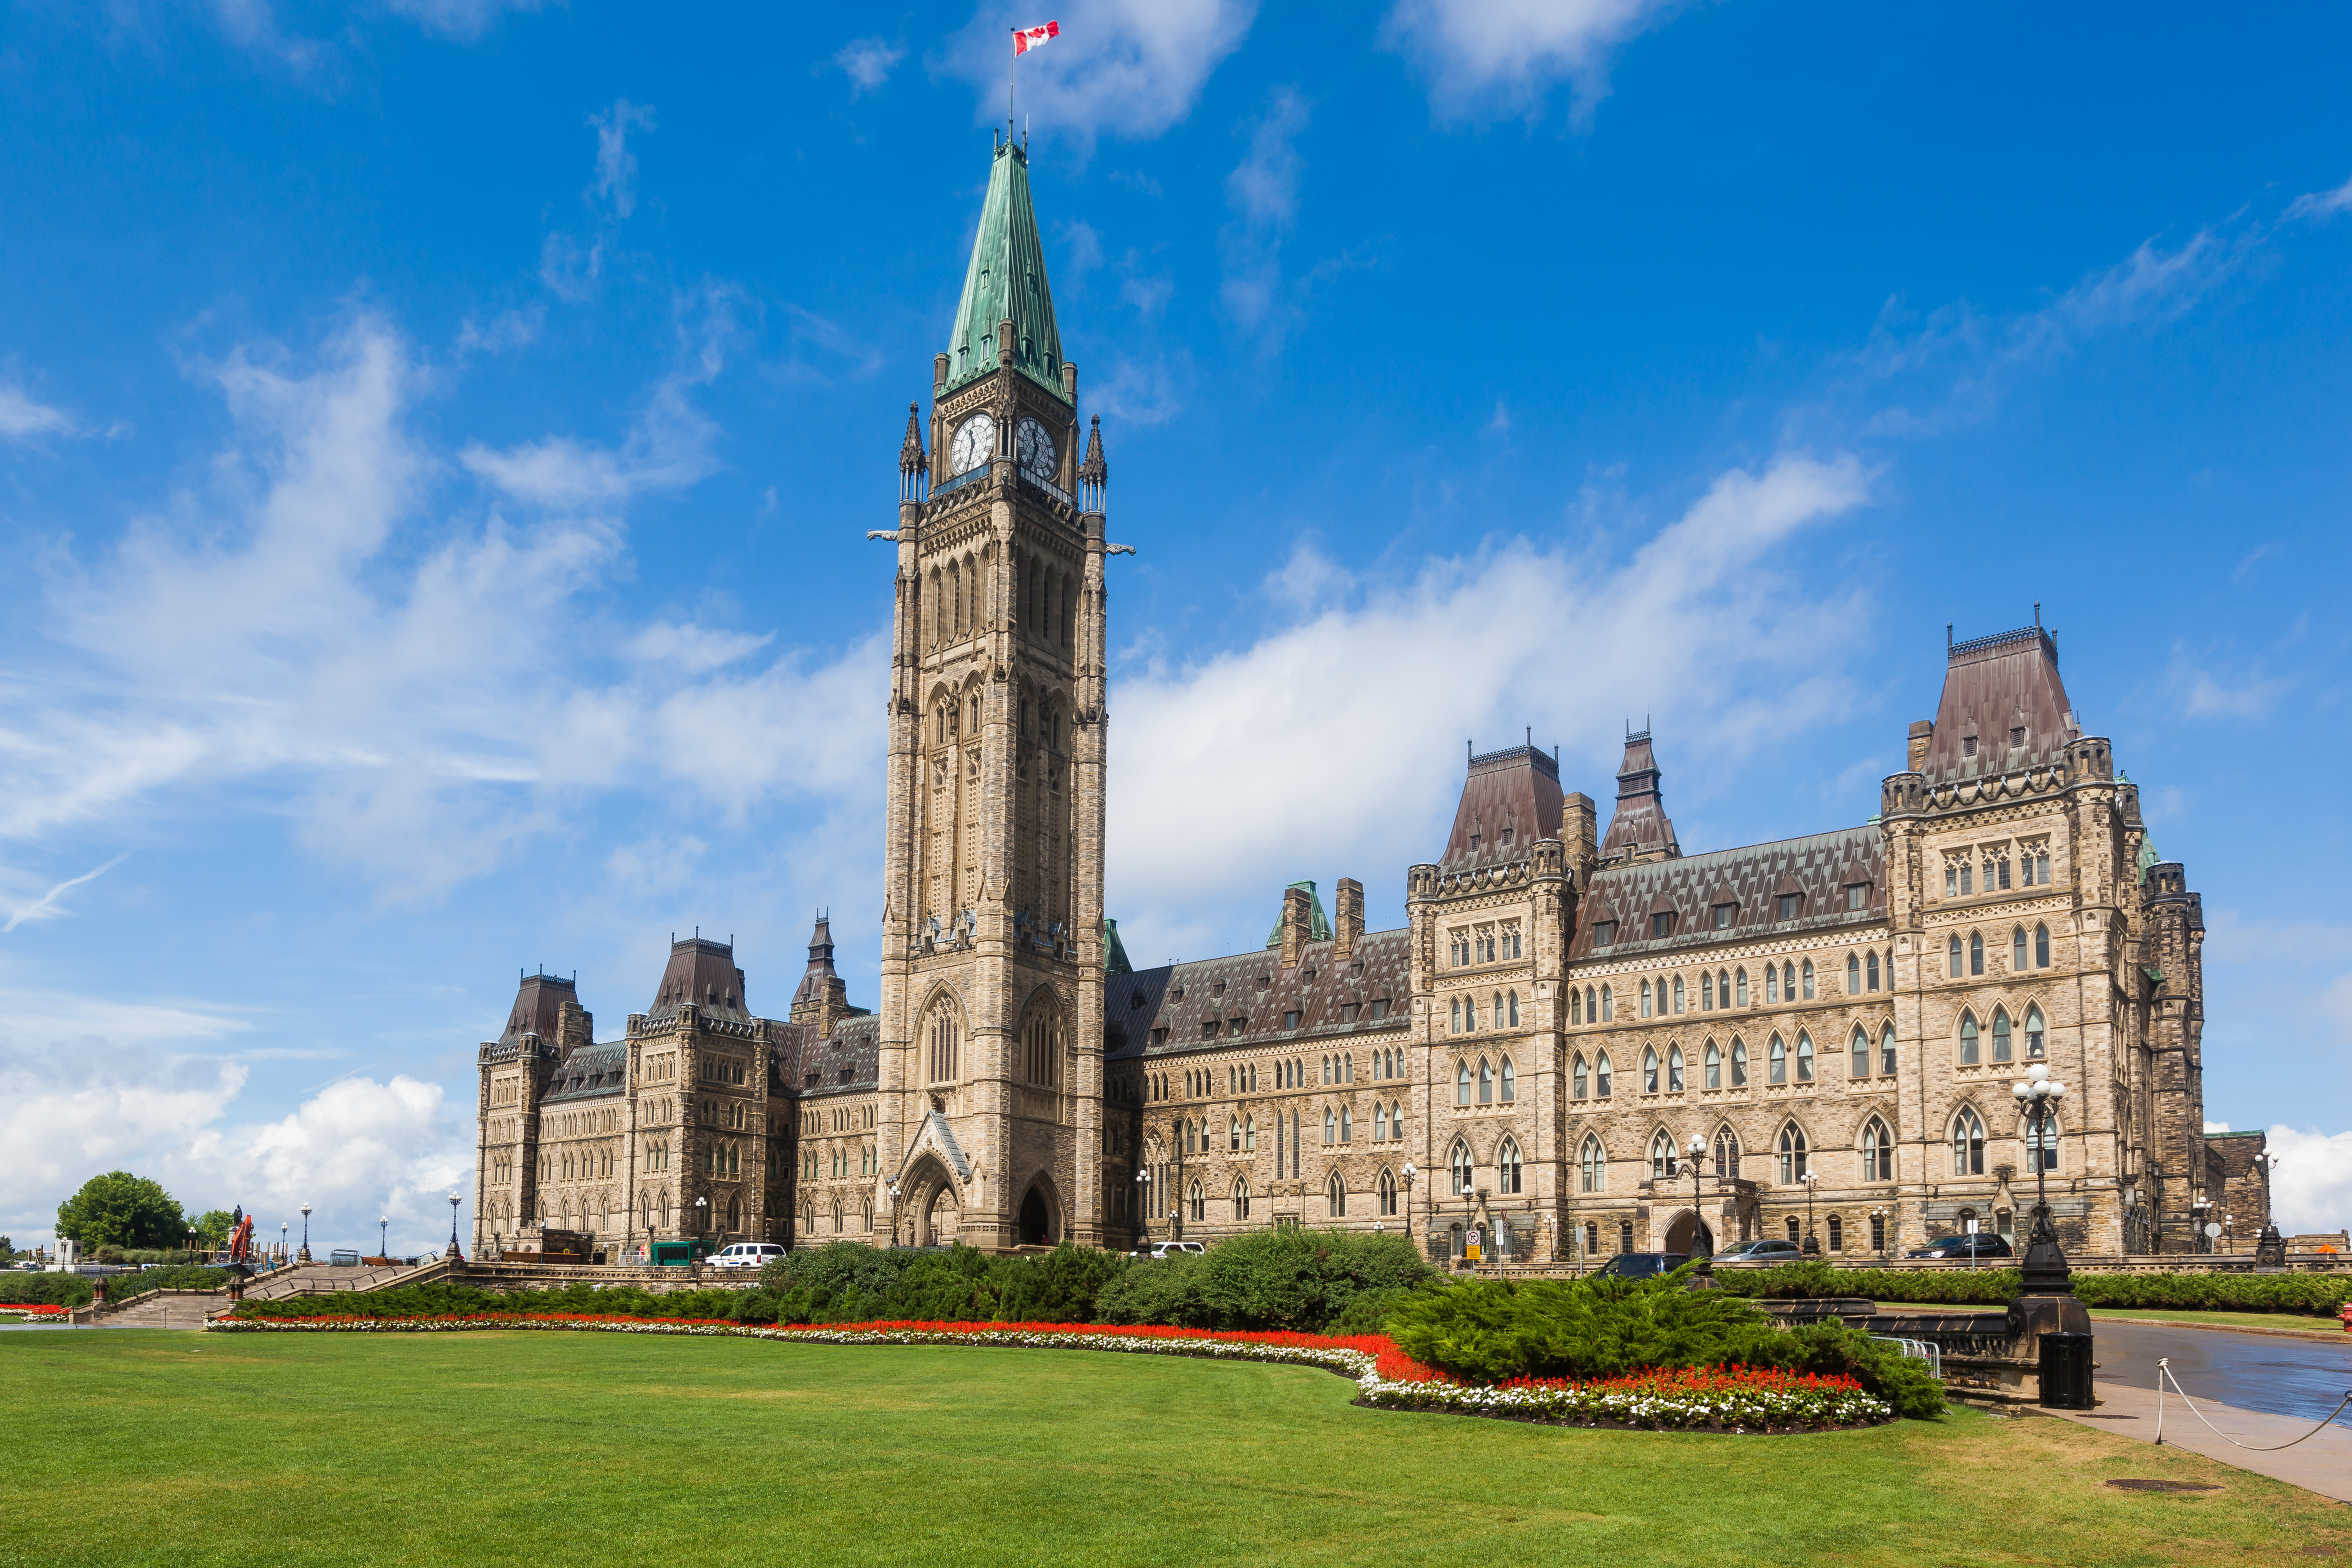 The Center Block and the Peace Tower in Parliament Hill, Ottawa, Canada. Center Block is home to the Parliament of Canada